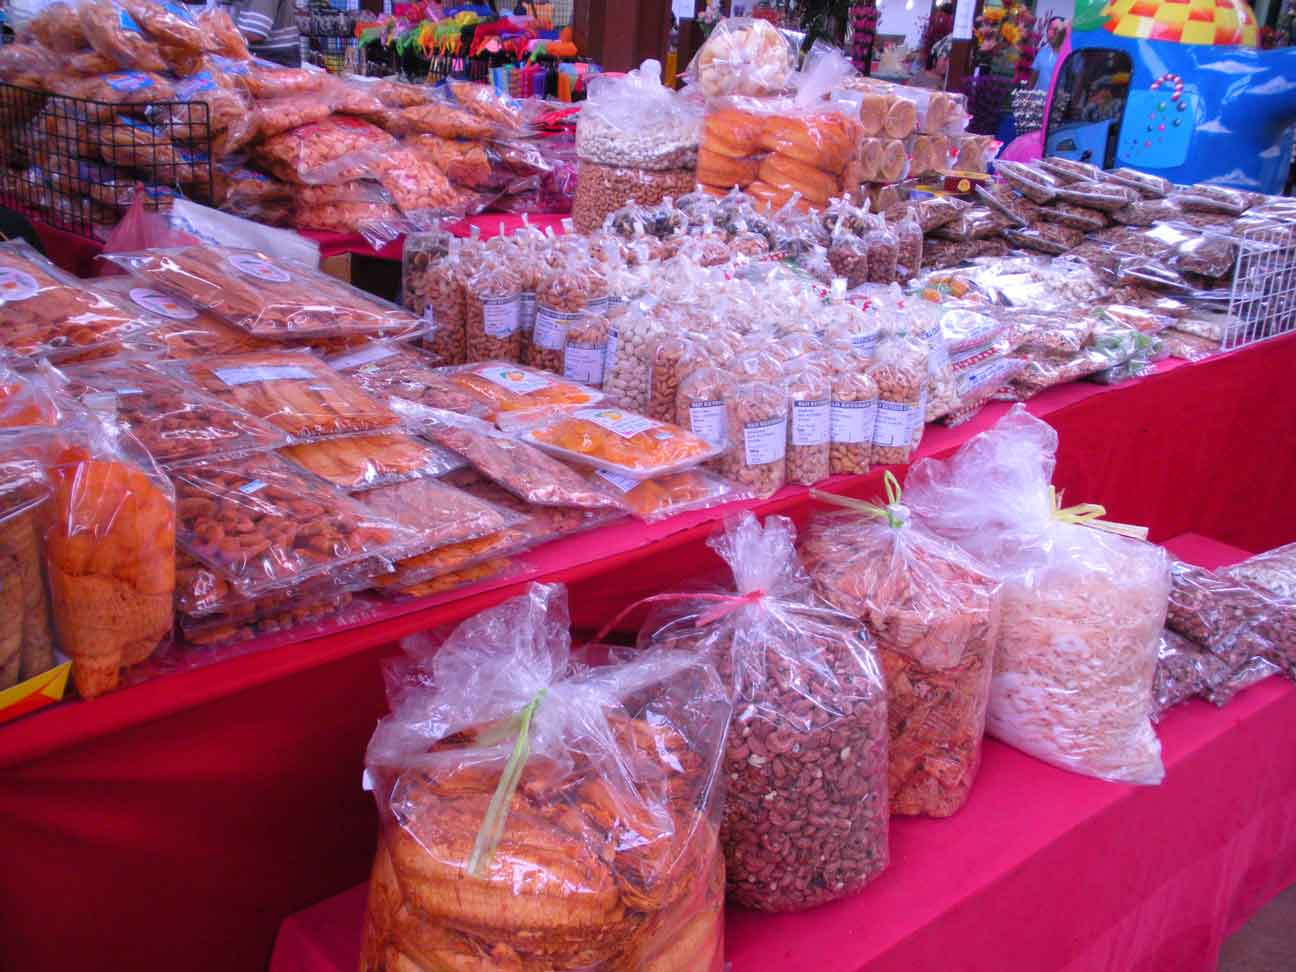 Thai Fair - dried food items